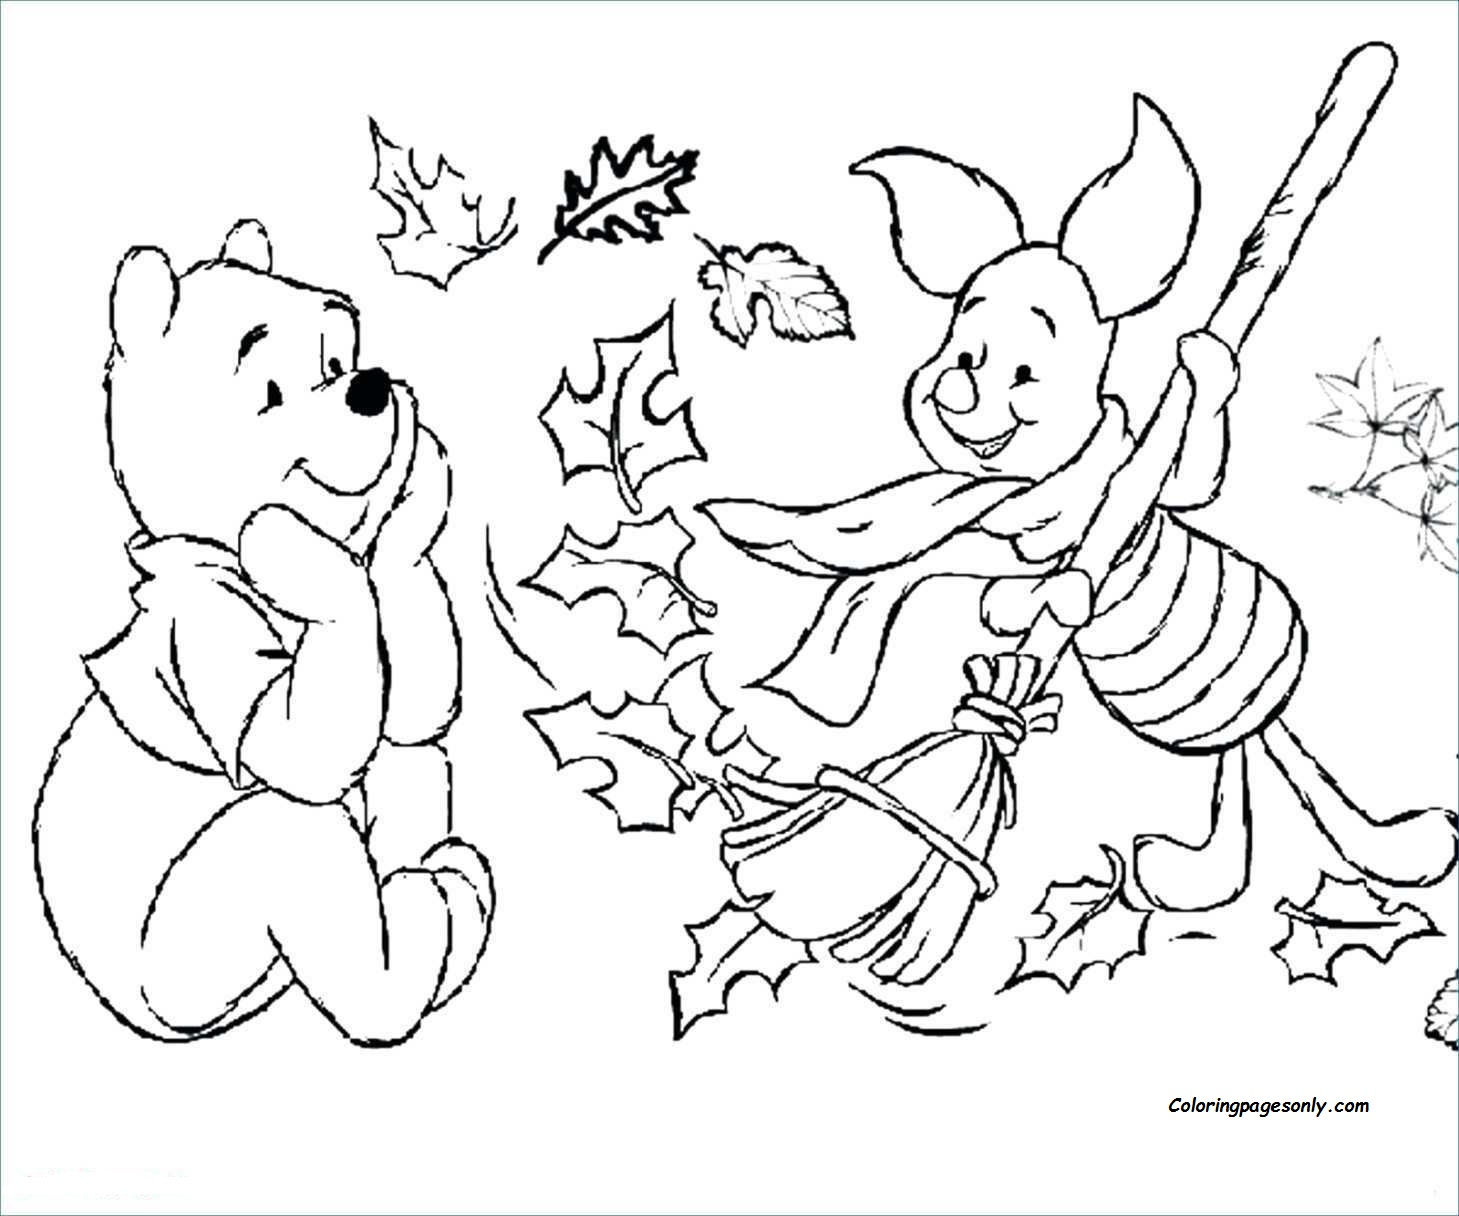 Kind Paw Patrol Coloring Page Coloring Page - Free Coloring Pages Online